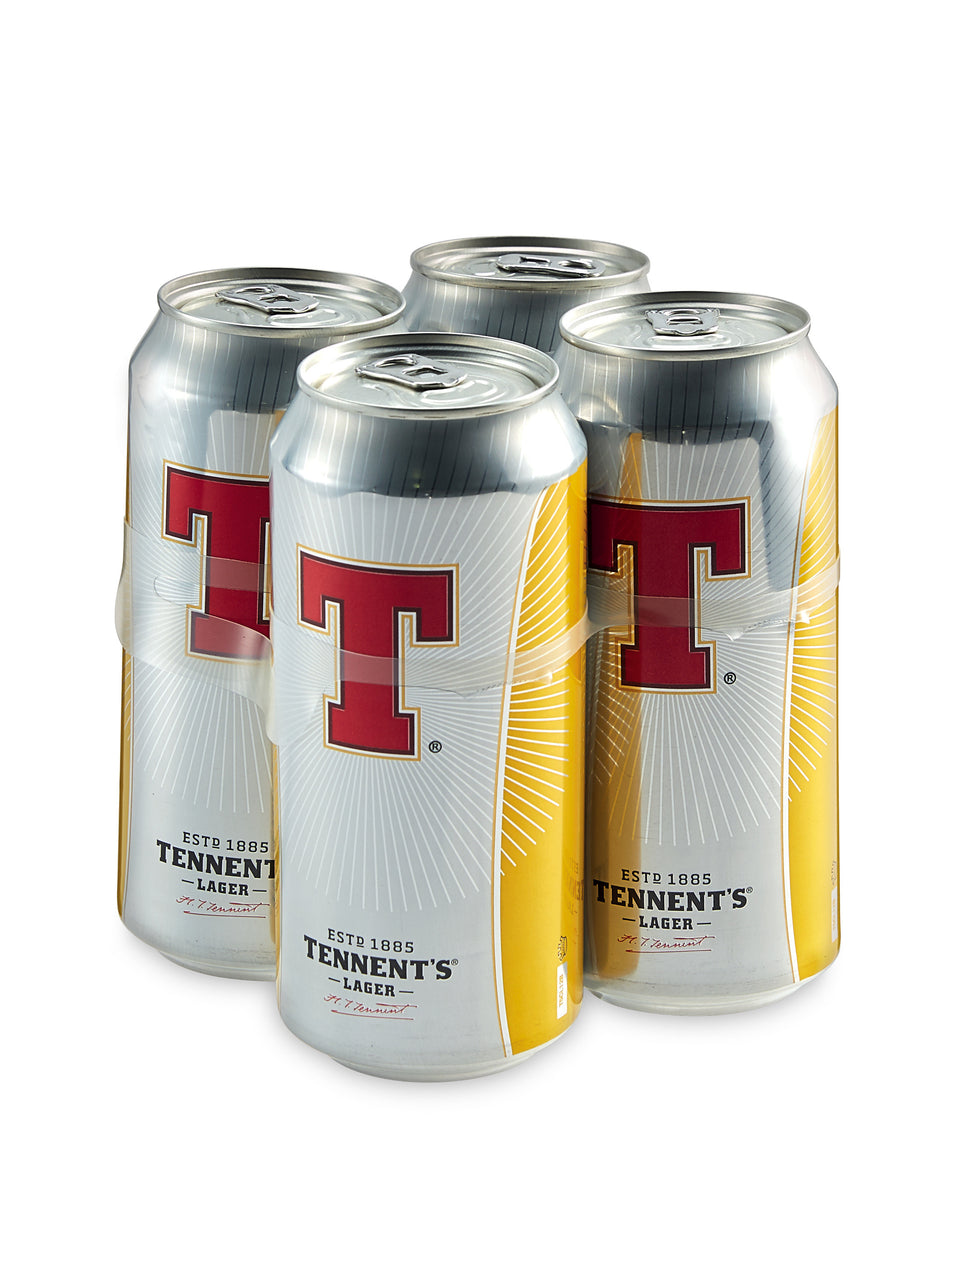 Tennents - Lager 4 x 500ml